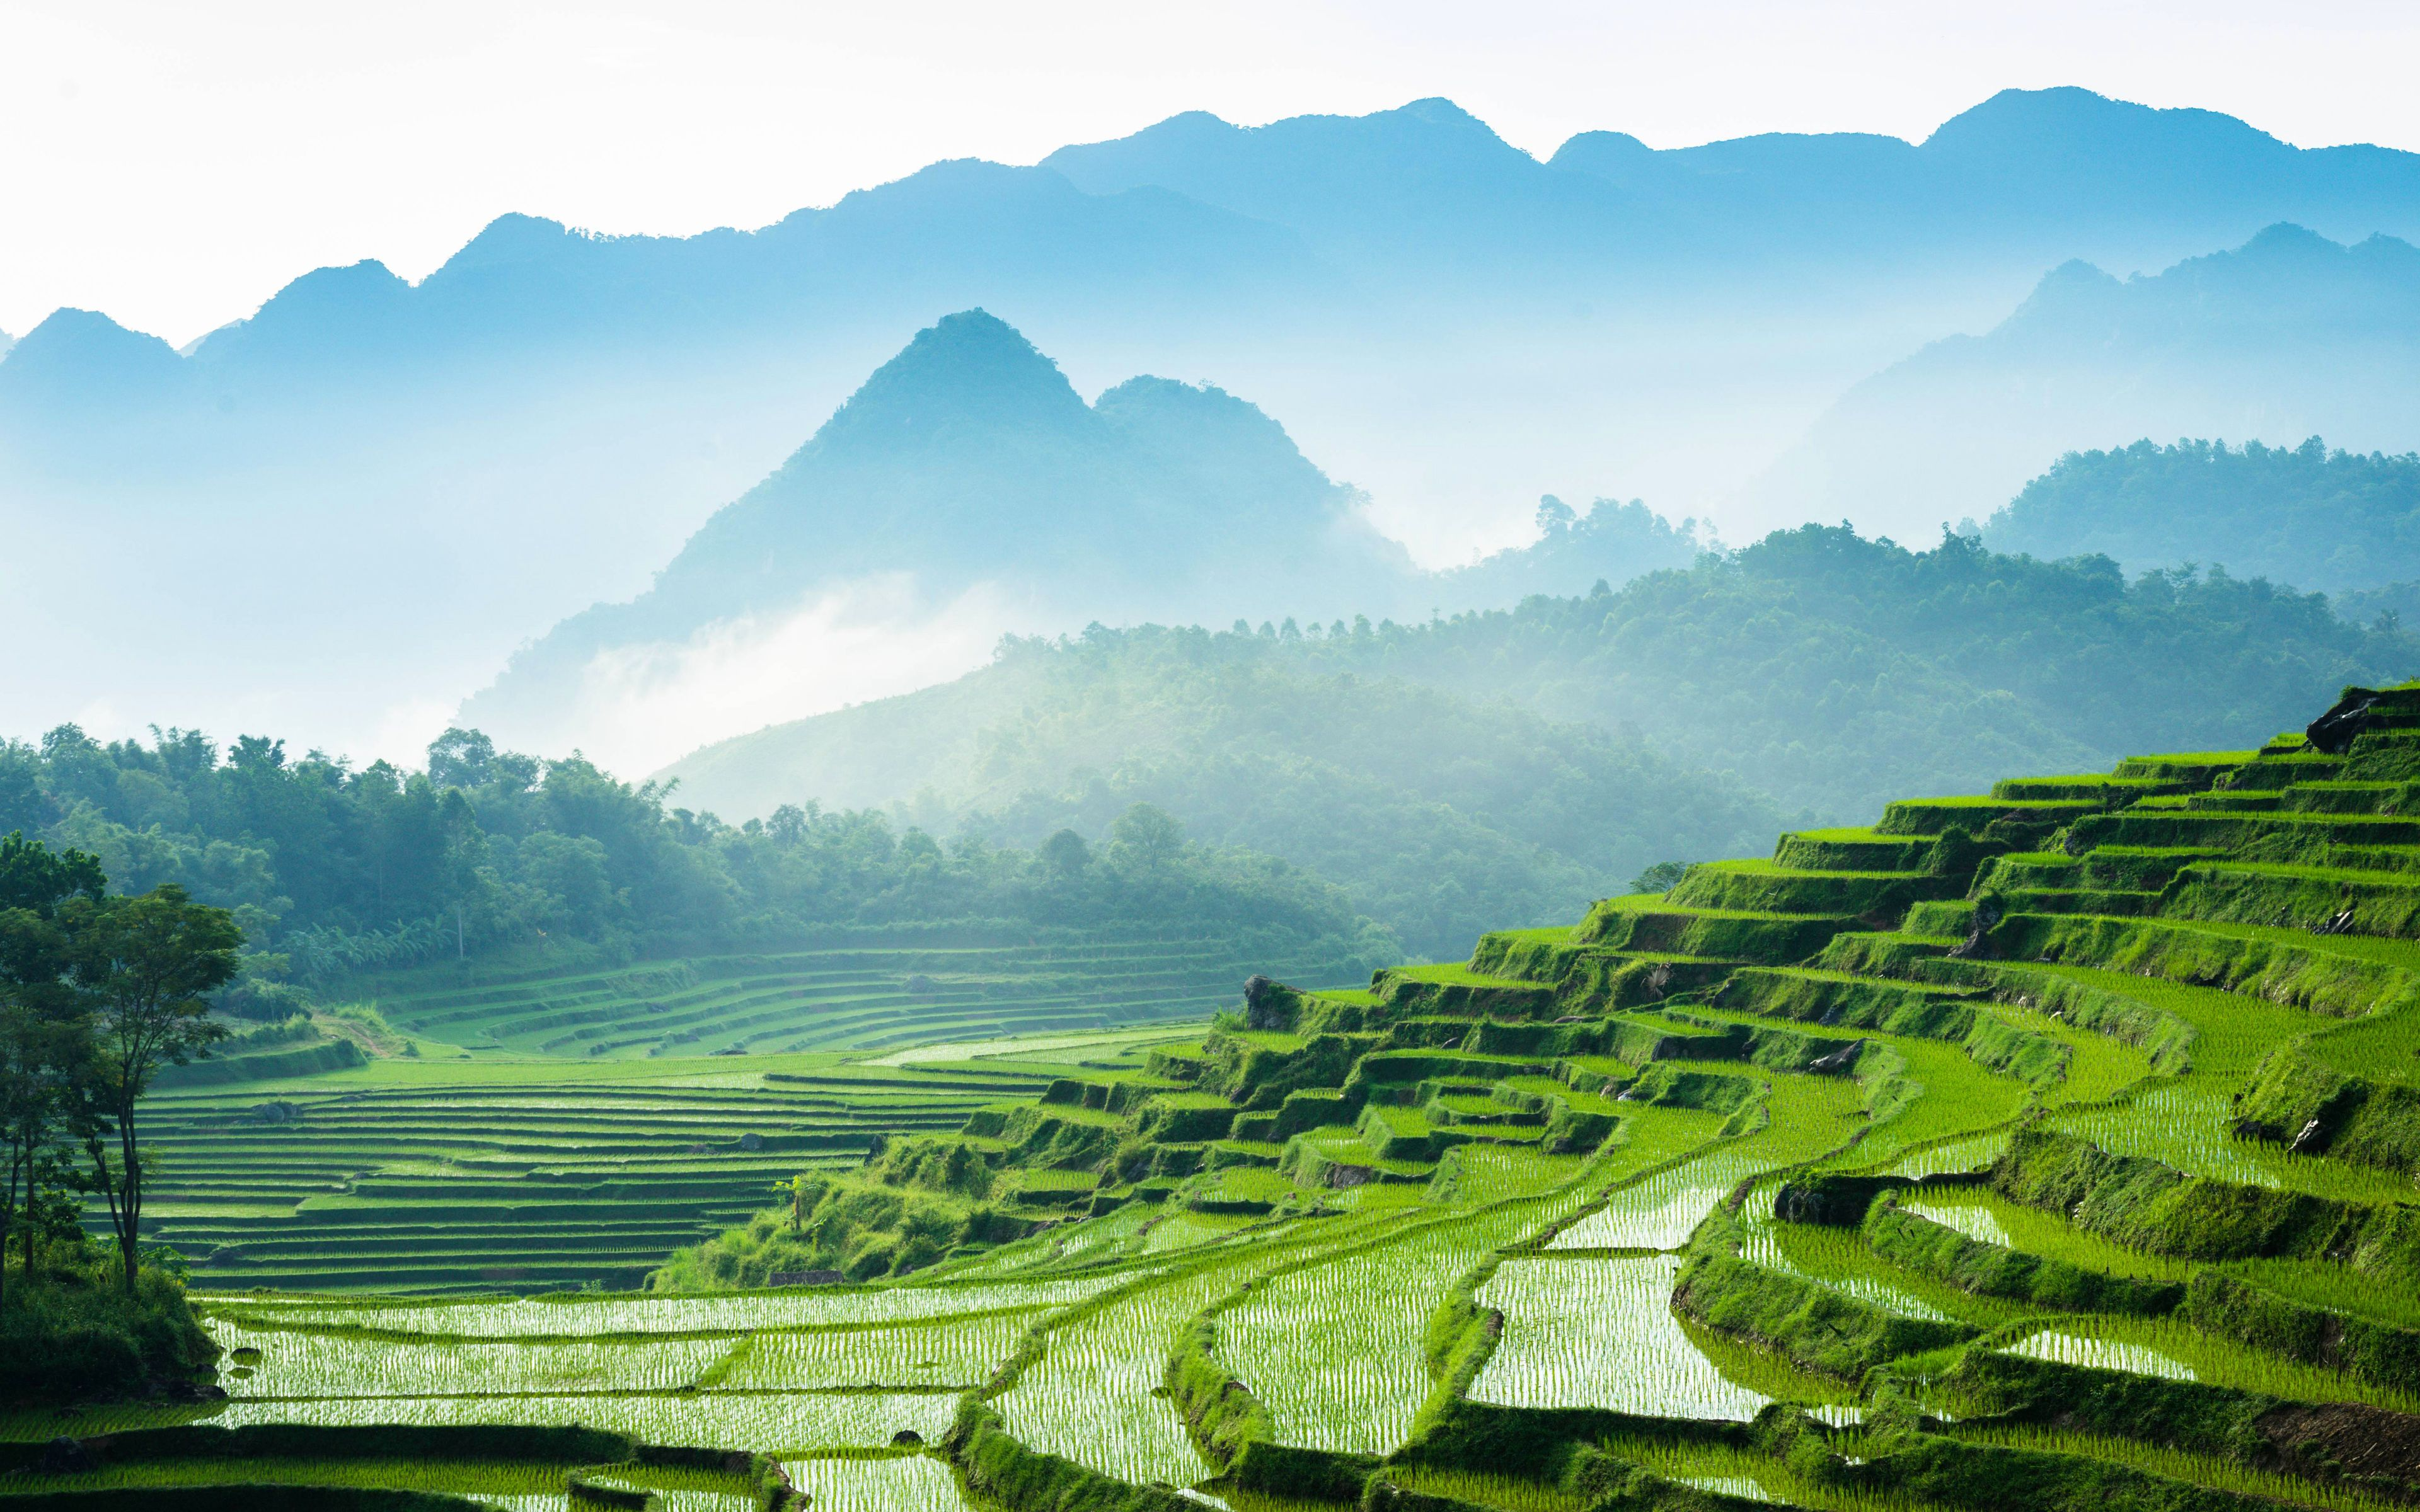 3840x2400 Download wallpapers Vietnam, 4k, rice fields, mountains ...